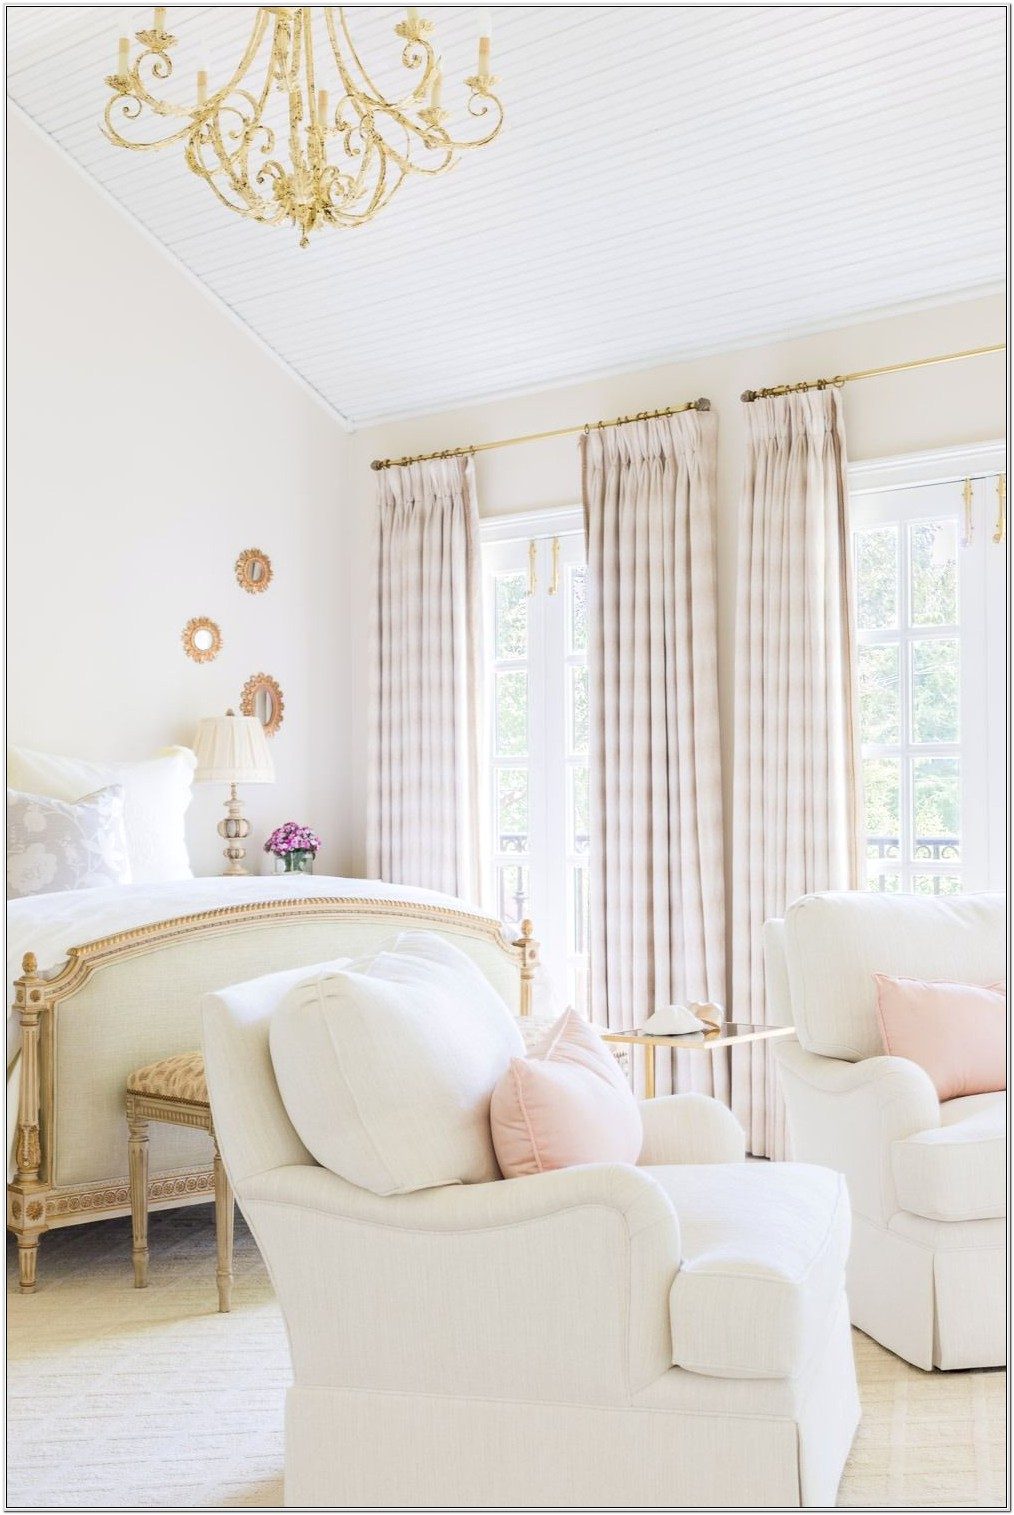 Bedroom Decor White And Gold